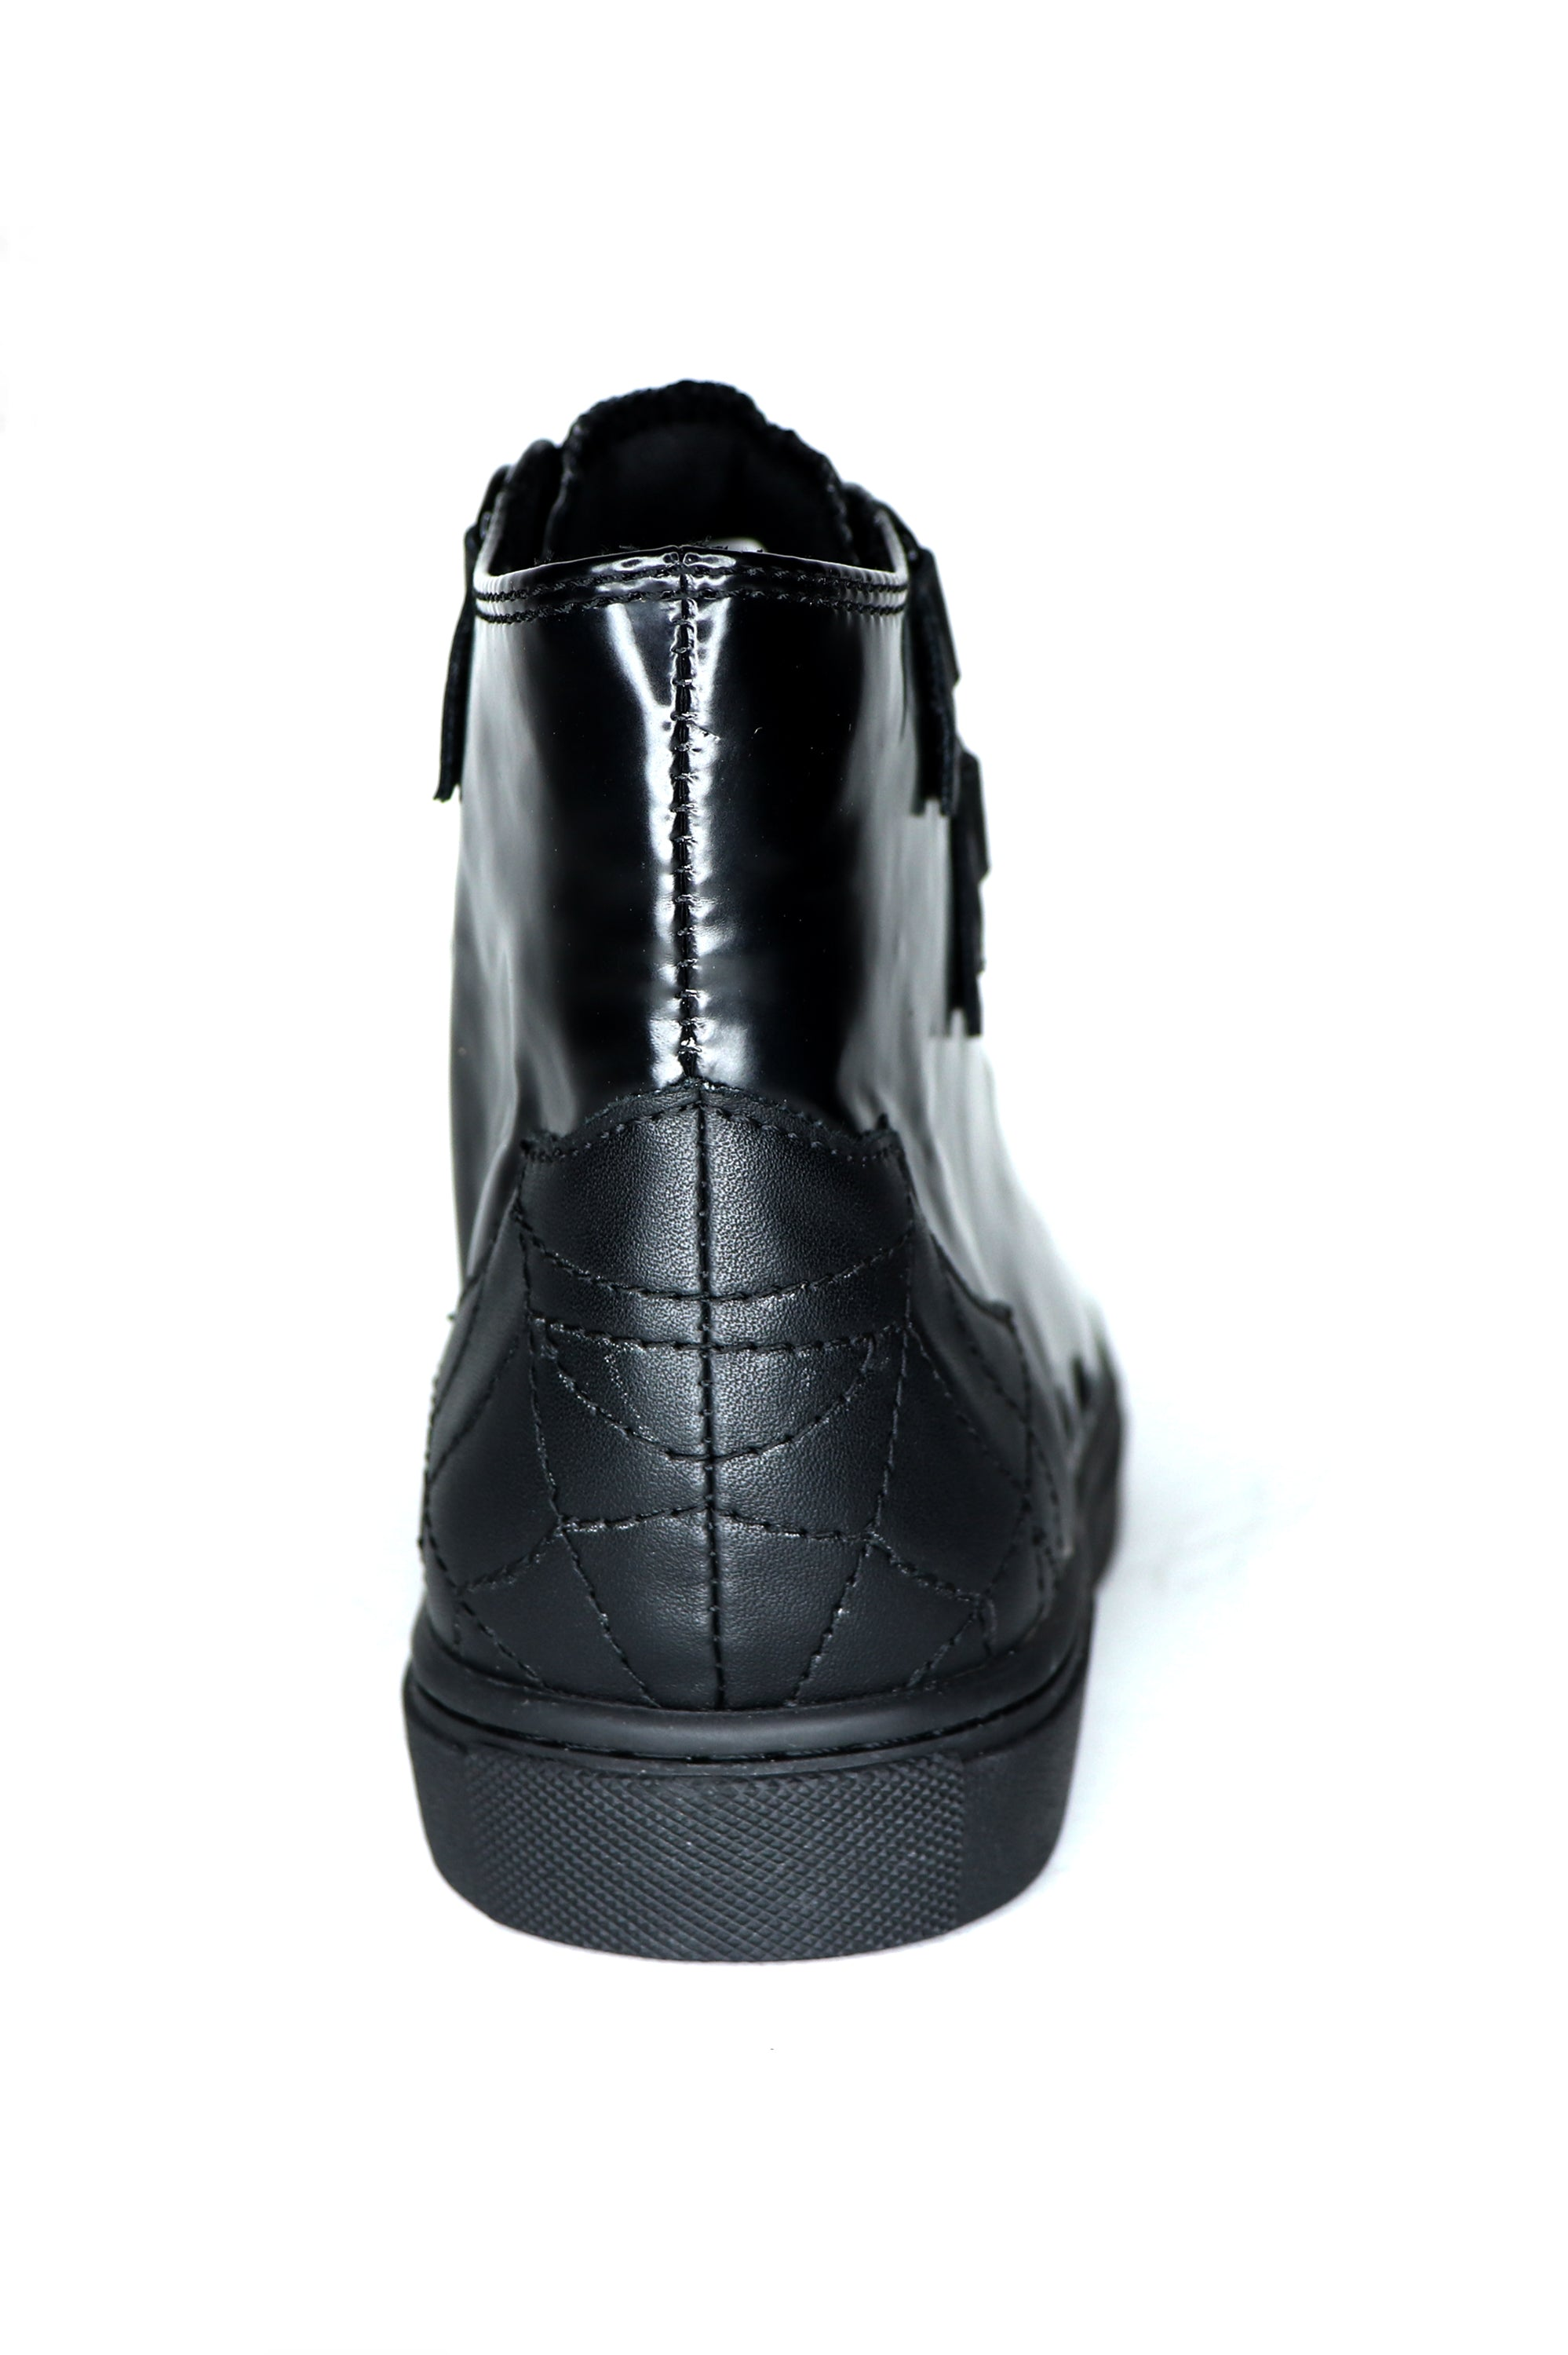 All Black Chelsea High Top Sneakers (vegan) - size 6 & 7 left!